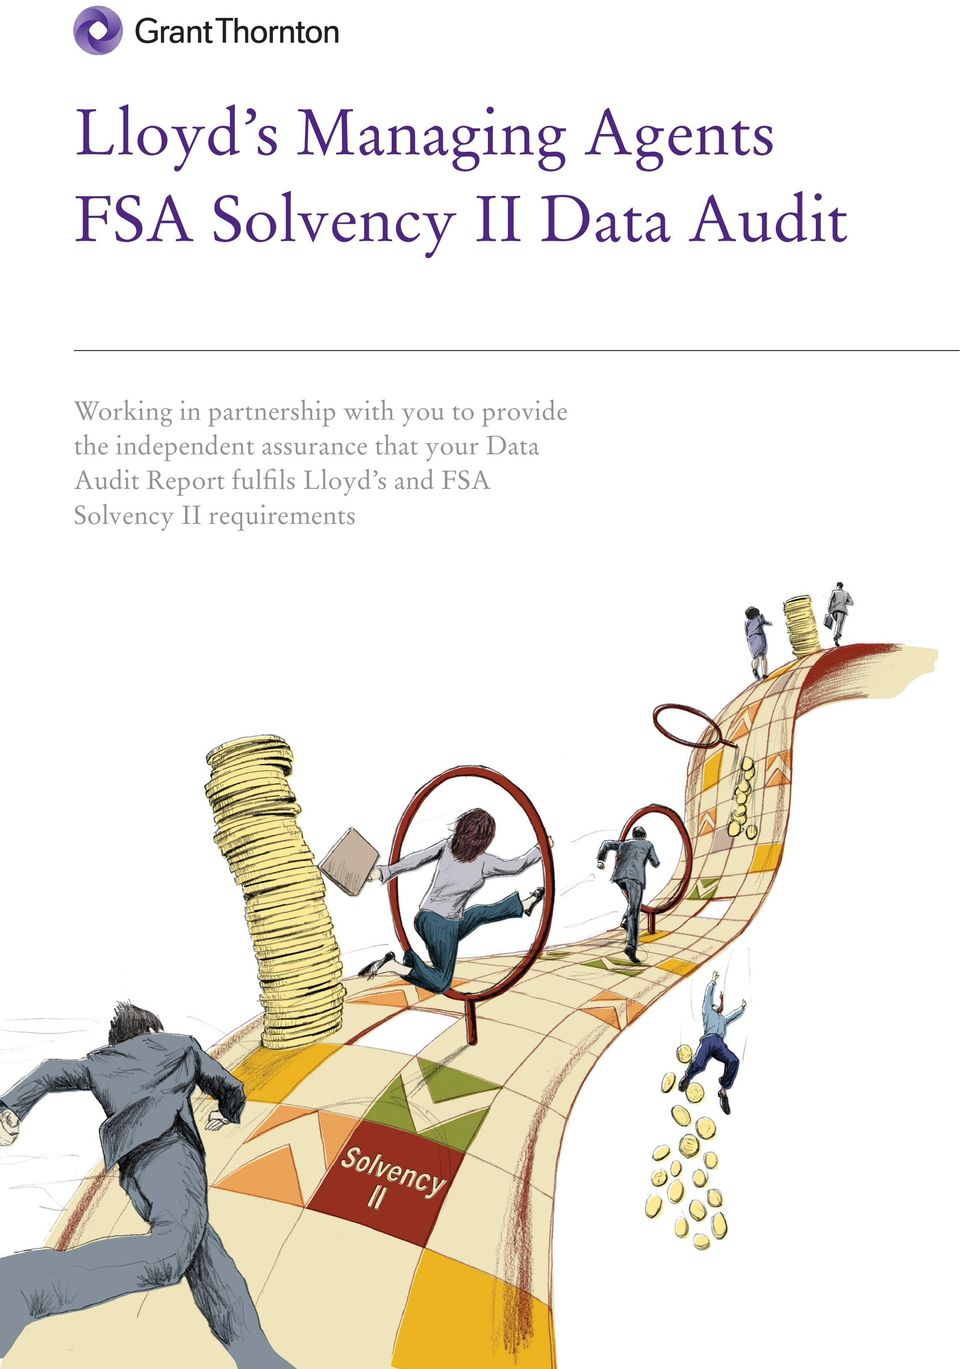 the independent assurance that your Data Audit